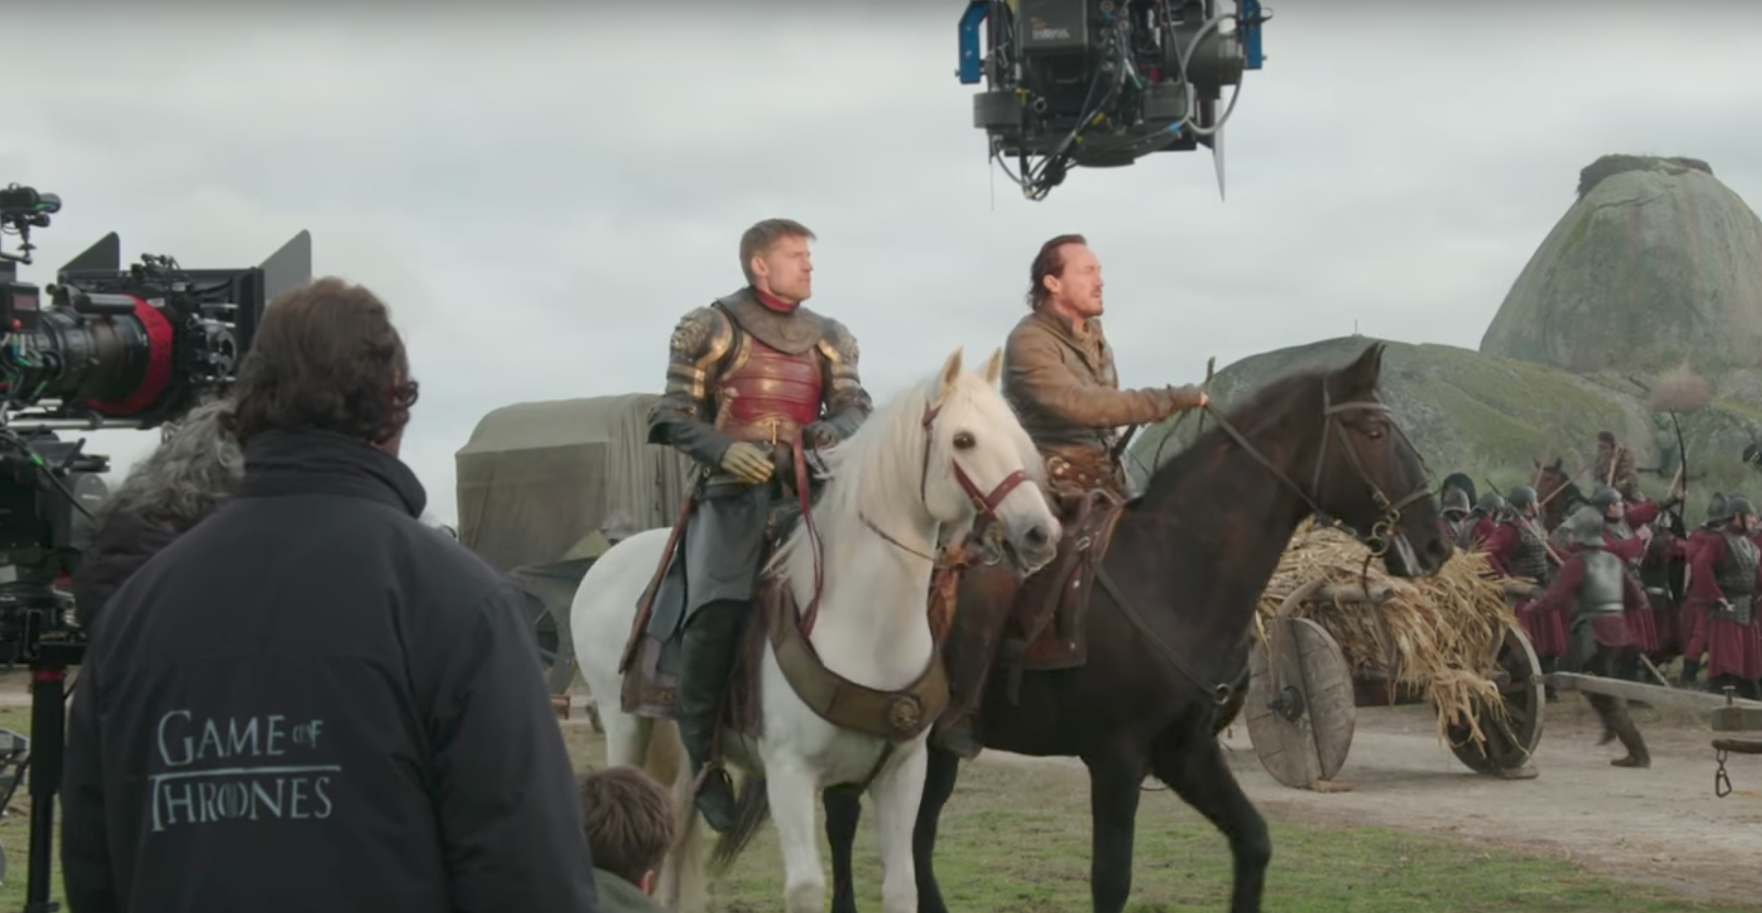 Game of Thrones season 7 episode 4: How they created that incredible battle  scene in 'The Spoils of War' | The Independent